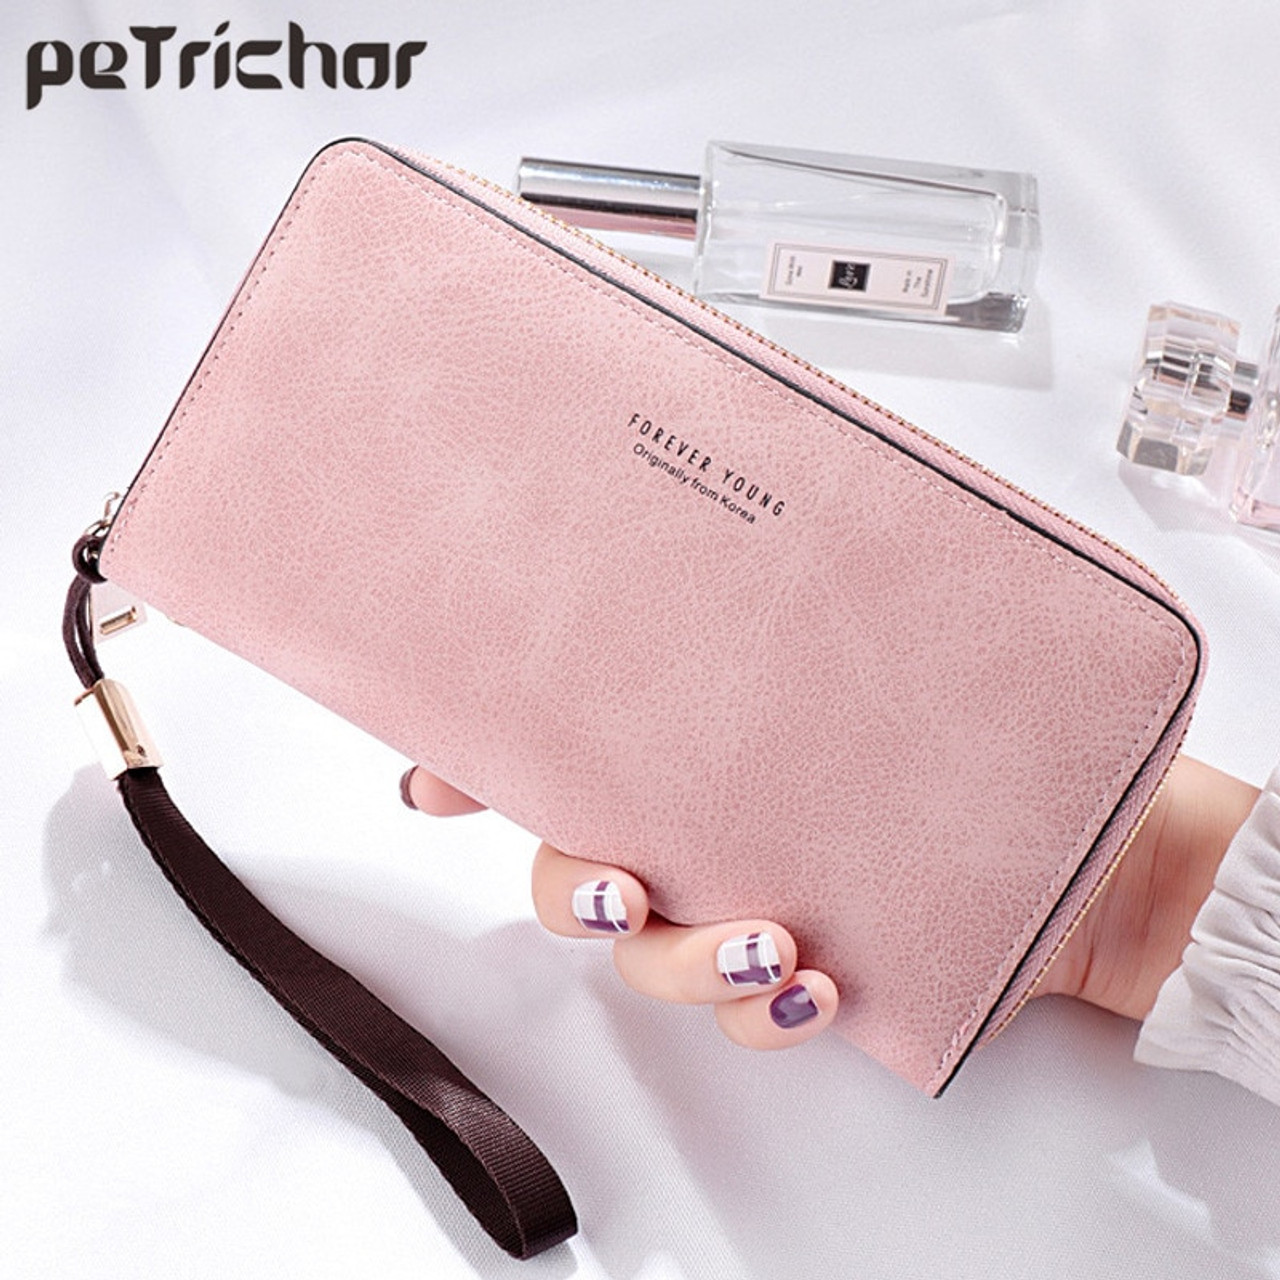 2055999d19d4d2 Brand Designer Wristband Wallets Women Many Departments Clutch Wallet  Female Long Large Card Purse Ladies Handbag ...